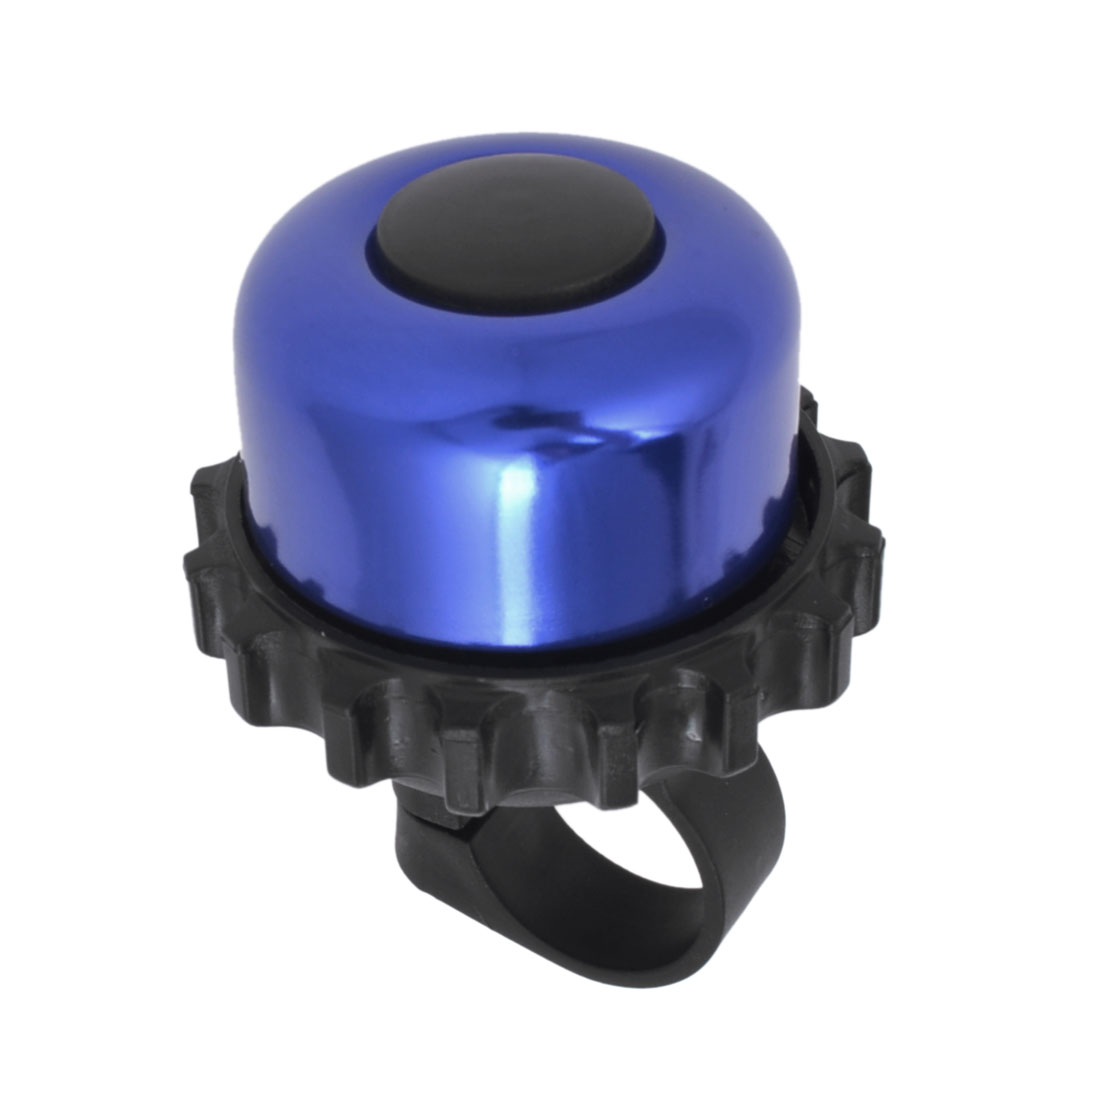 22mm Dia Fixing Hole Black Blue Shell Bicycle Mini Bell